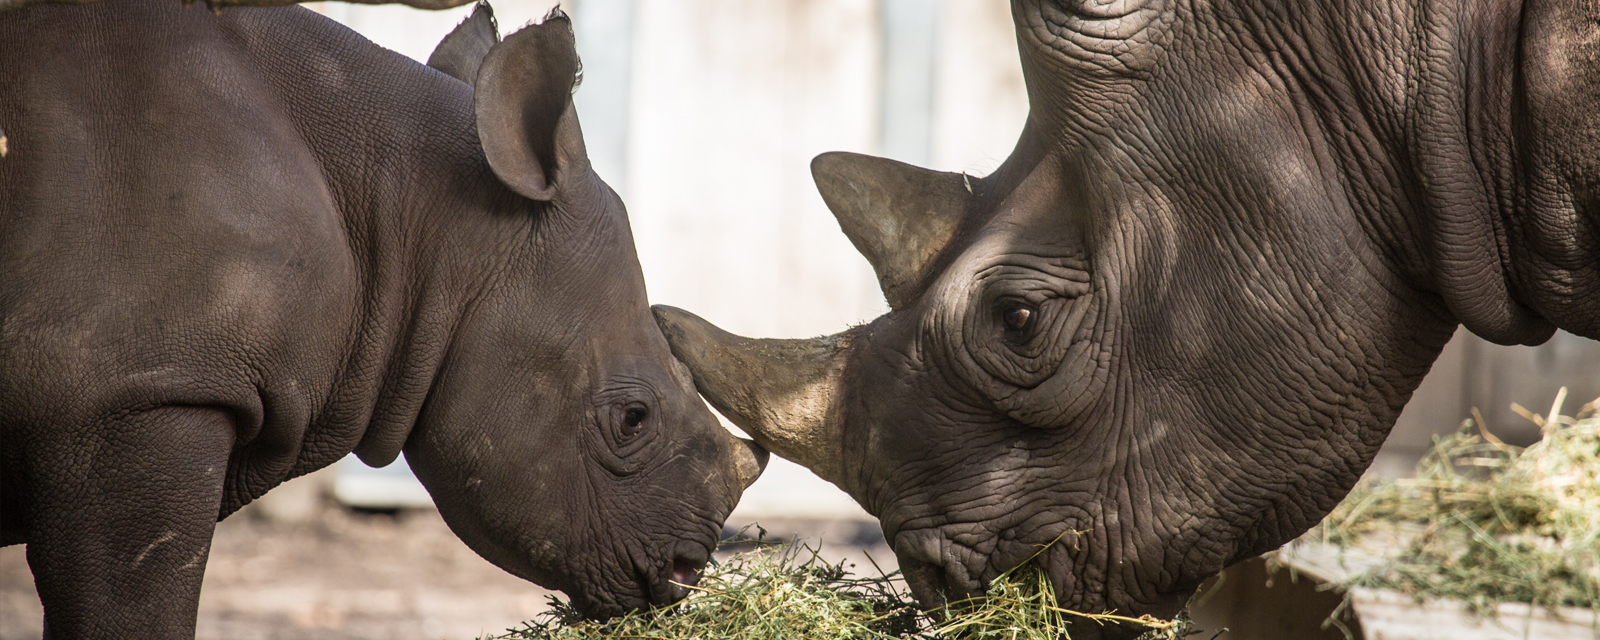 Eastern black rhino and calf in exhibit